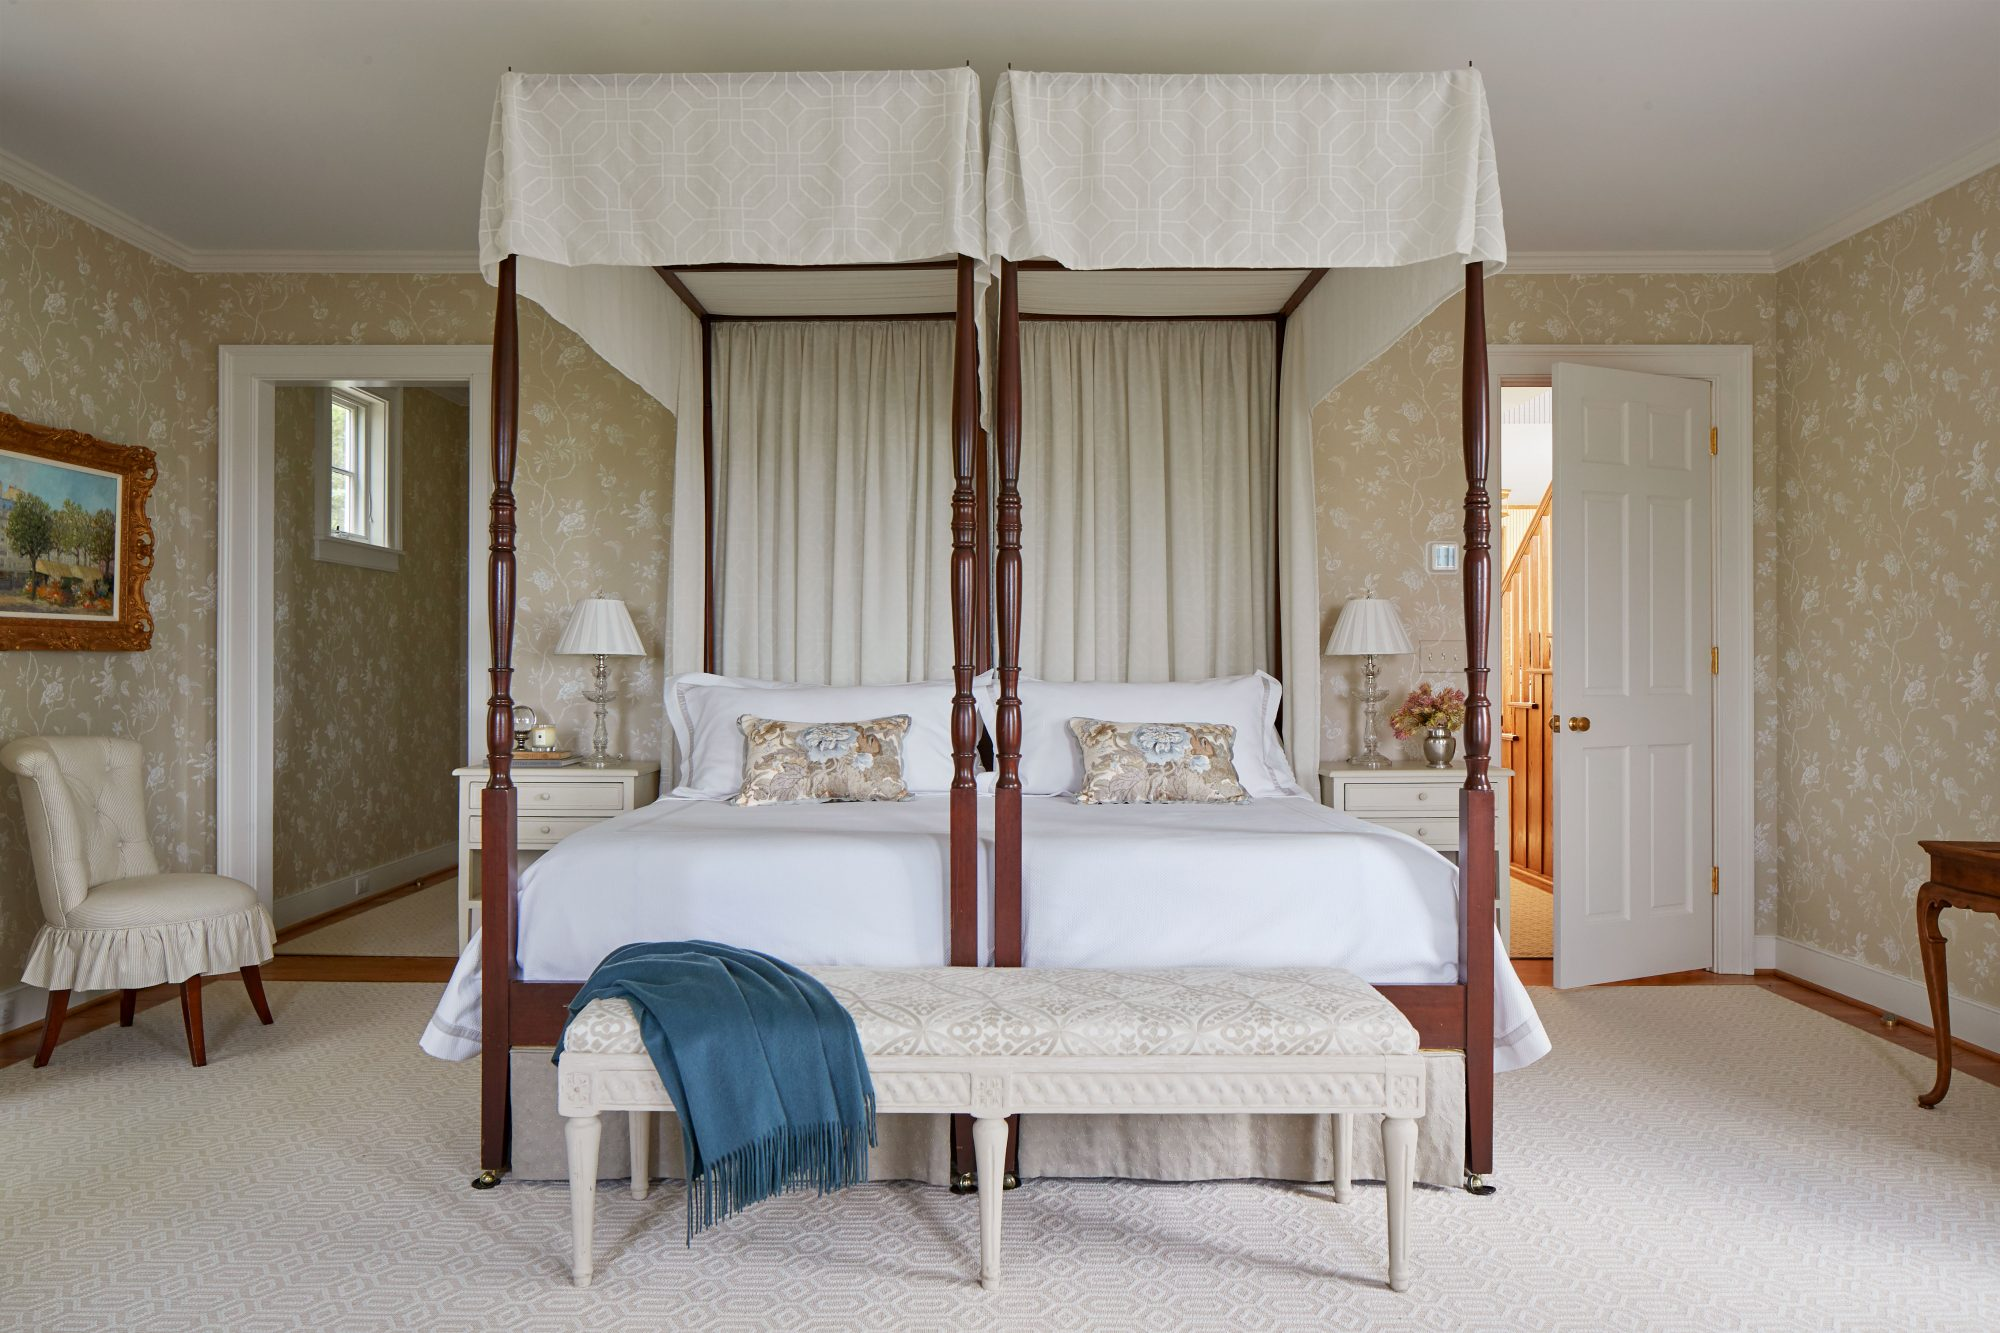 Main Bedroom with Four-Poster Beds and Beige Fabrics